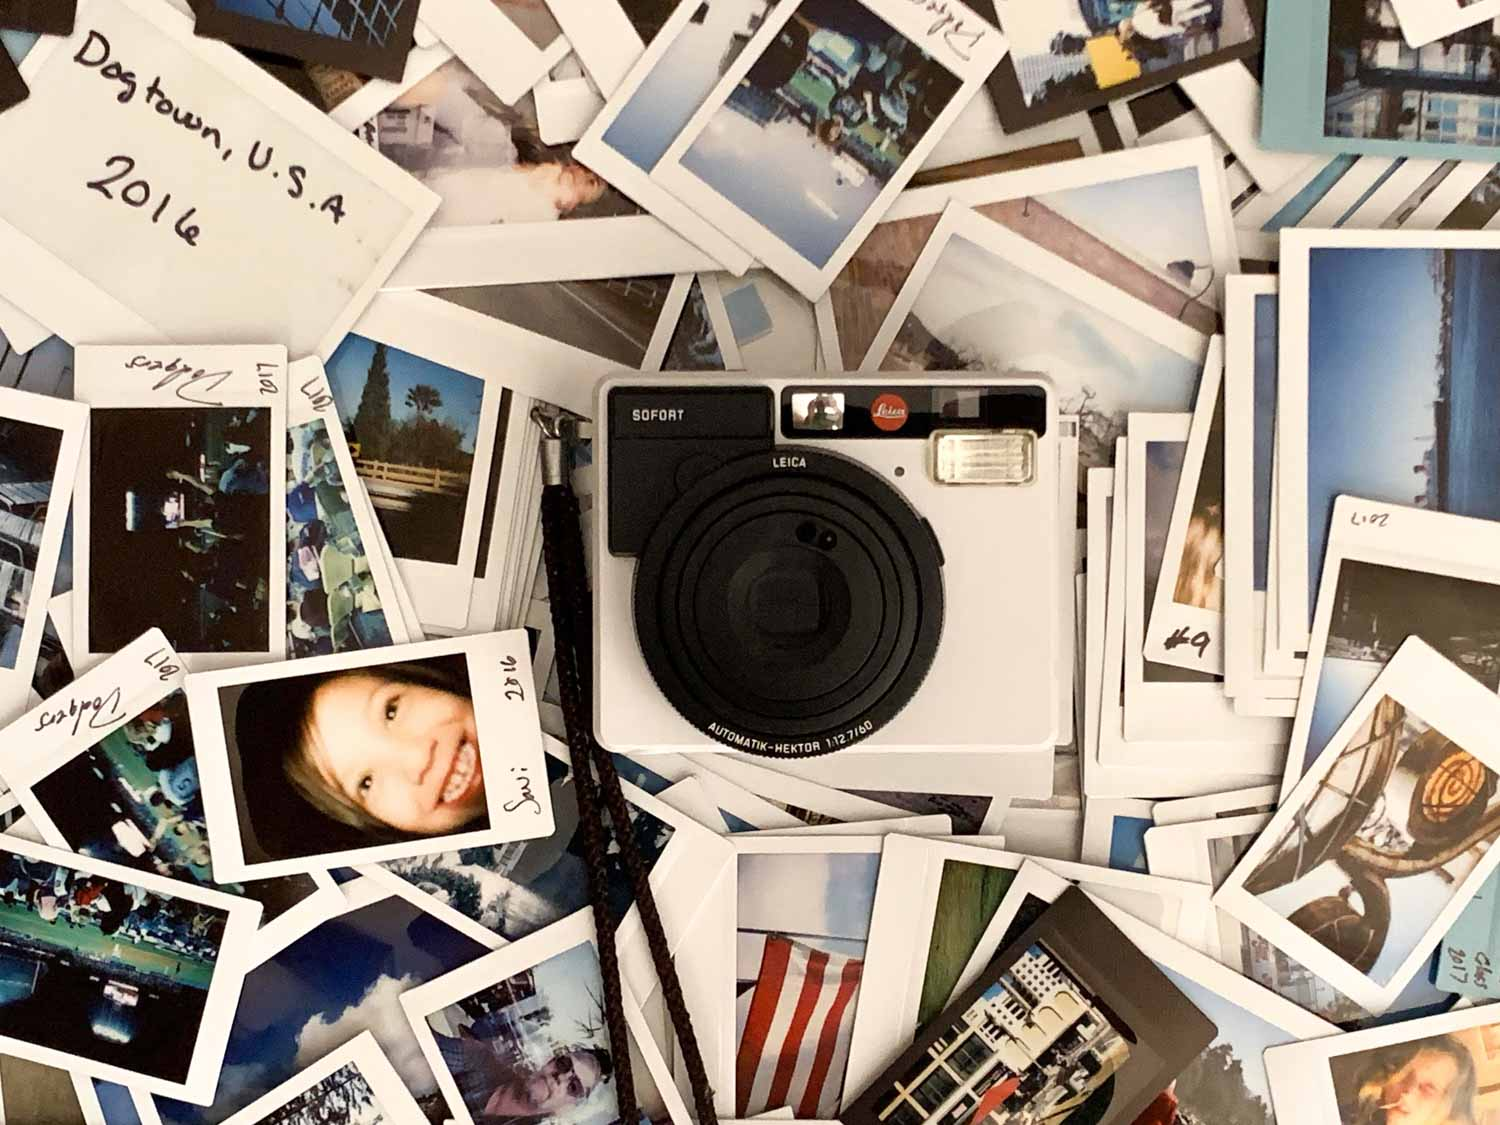 Instax - Leica Sofort. Image Credit: Edward Conte